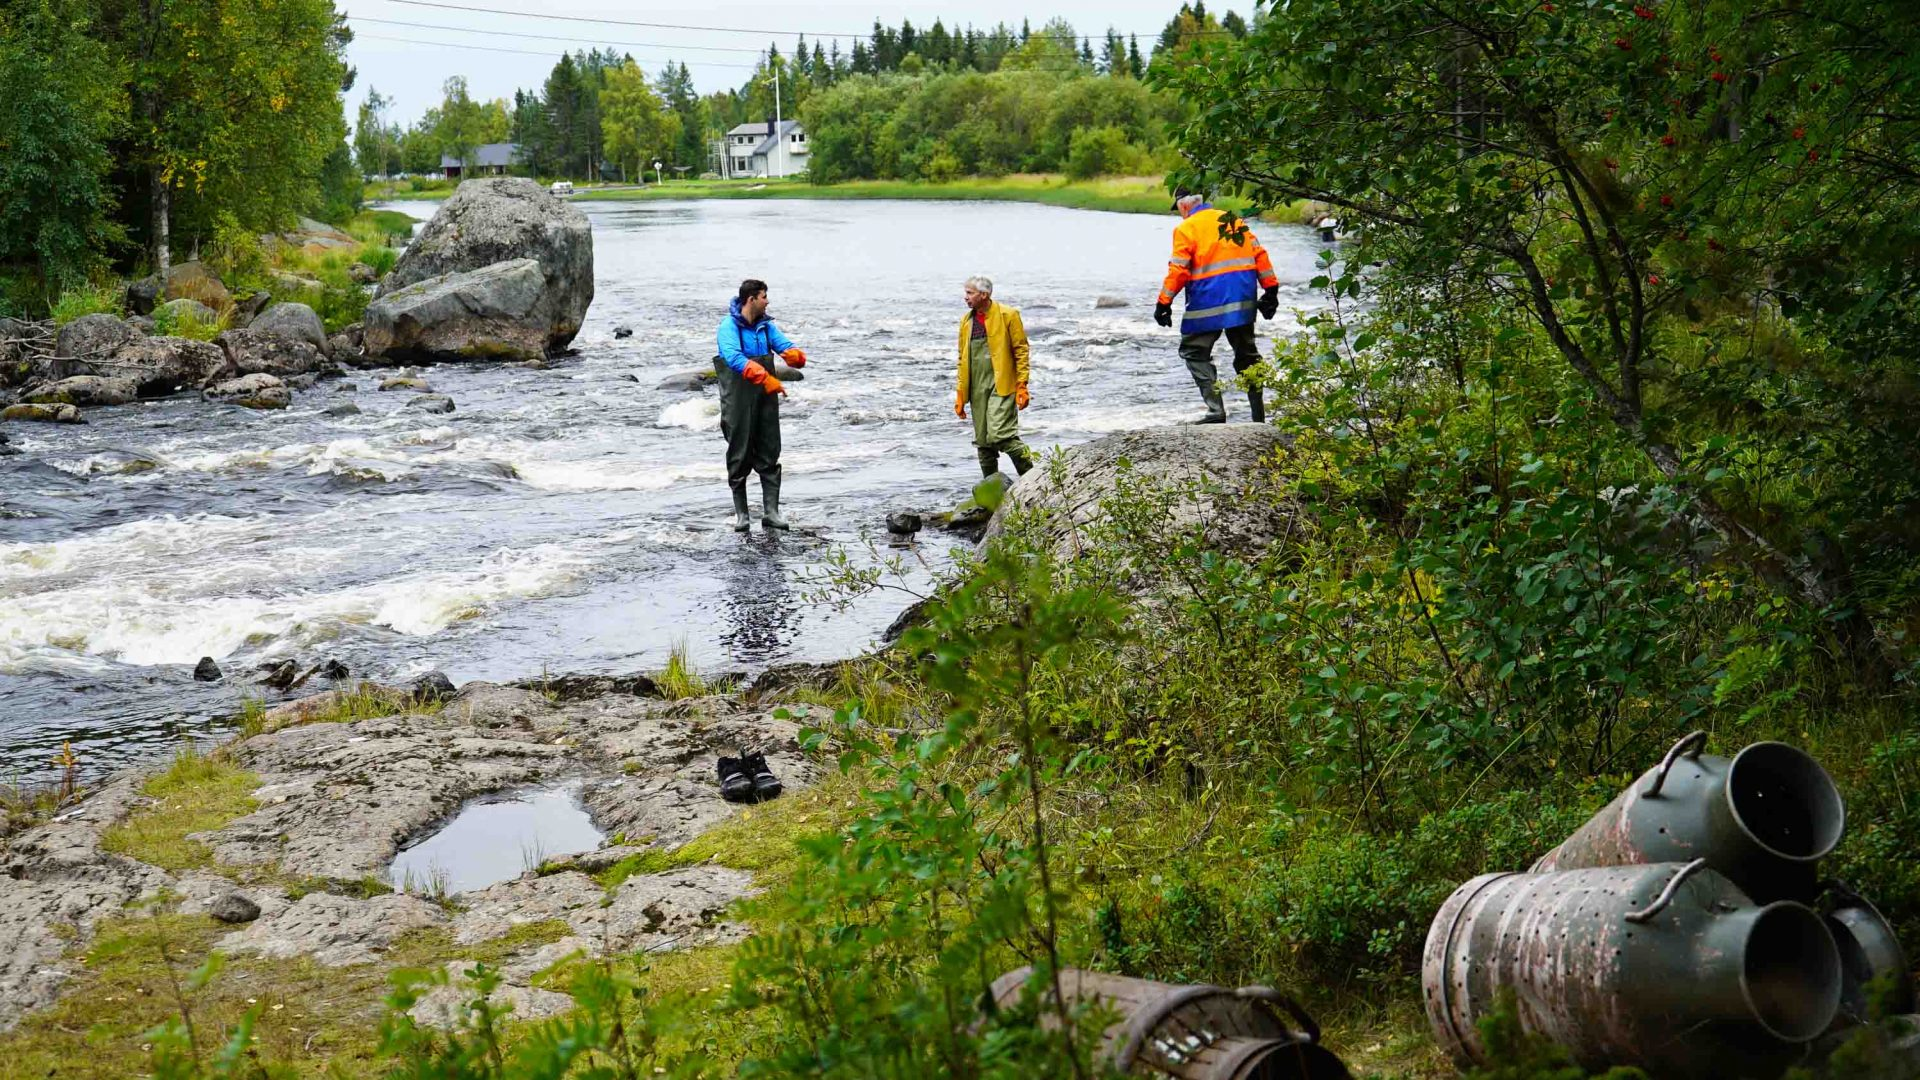 Fishing for lamprey fish in Byske, Swedish Lapland.